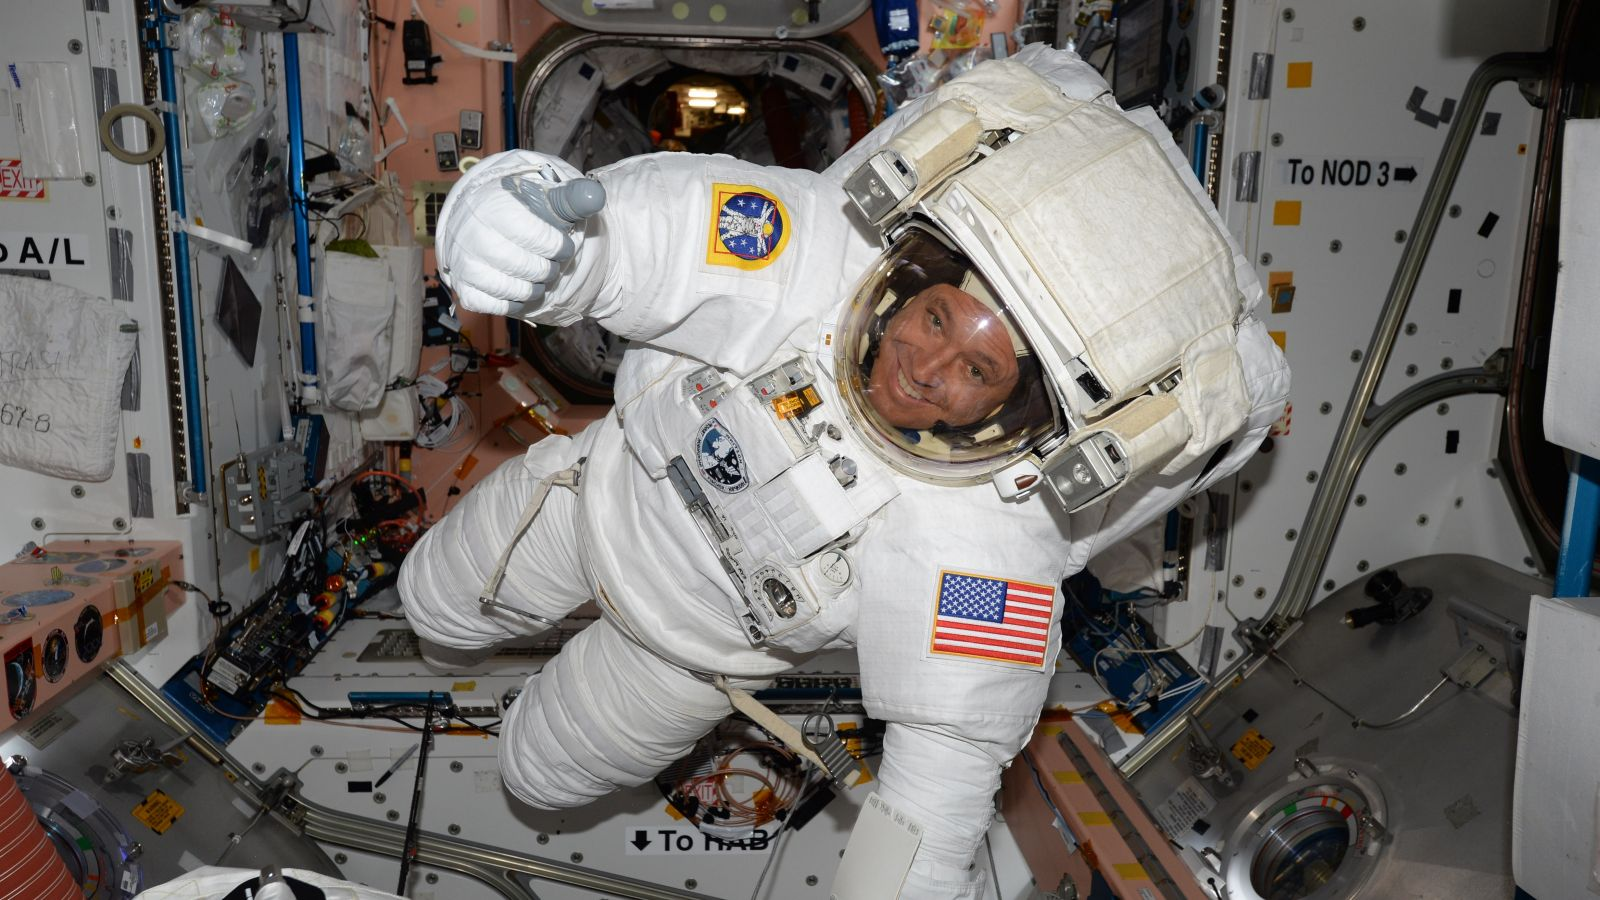 NASA astronauts performing 200th spacewalk at ISS